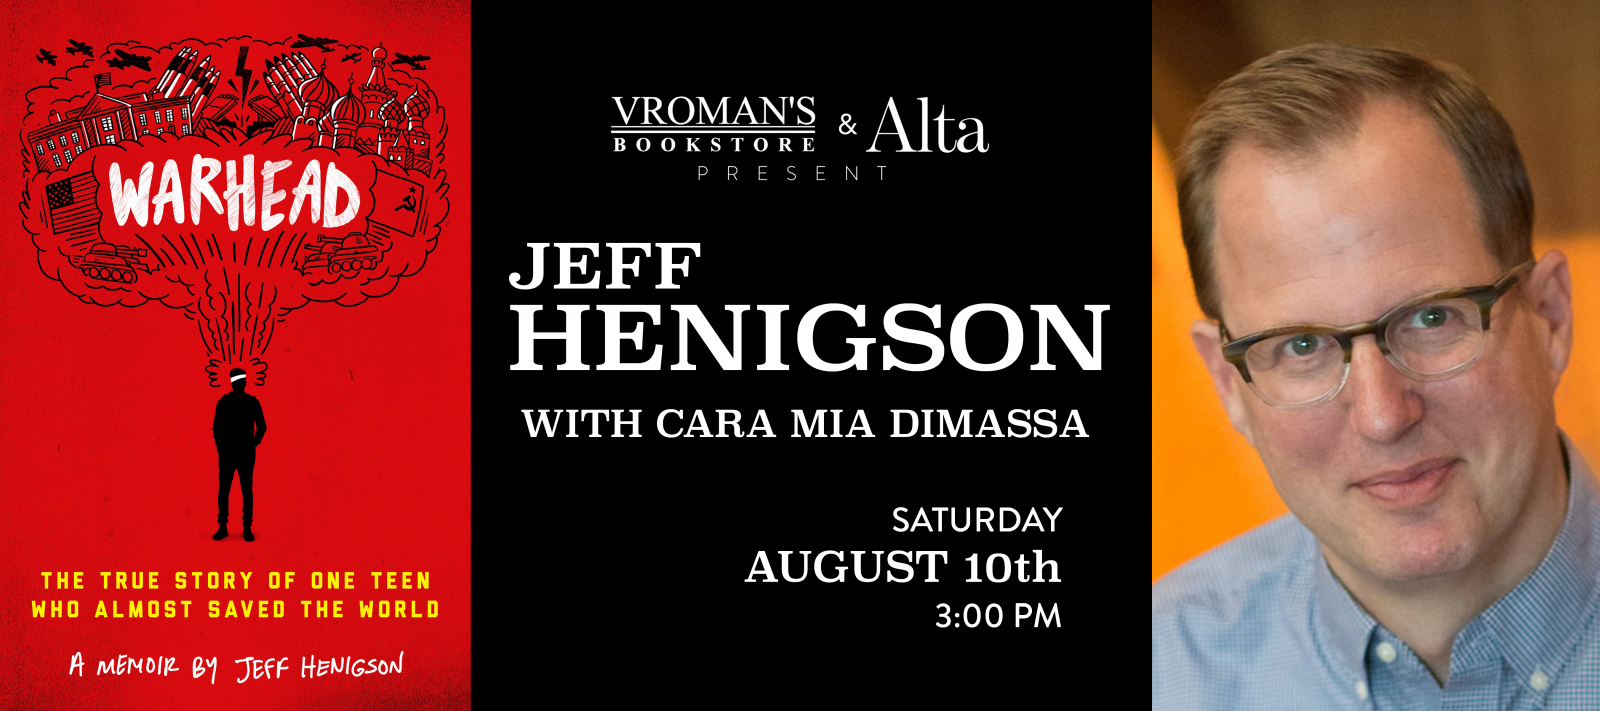 Jeff Henigson book signing Saturday August 10th at 3pm